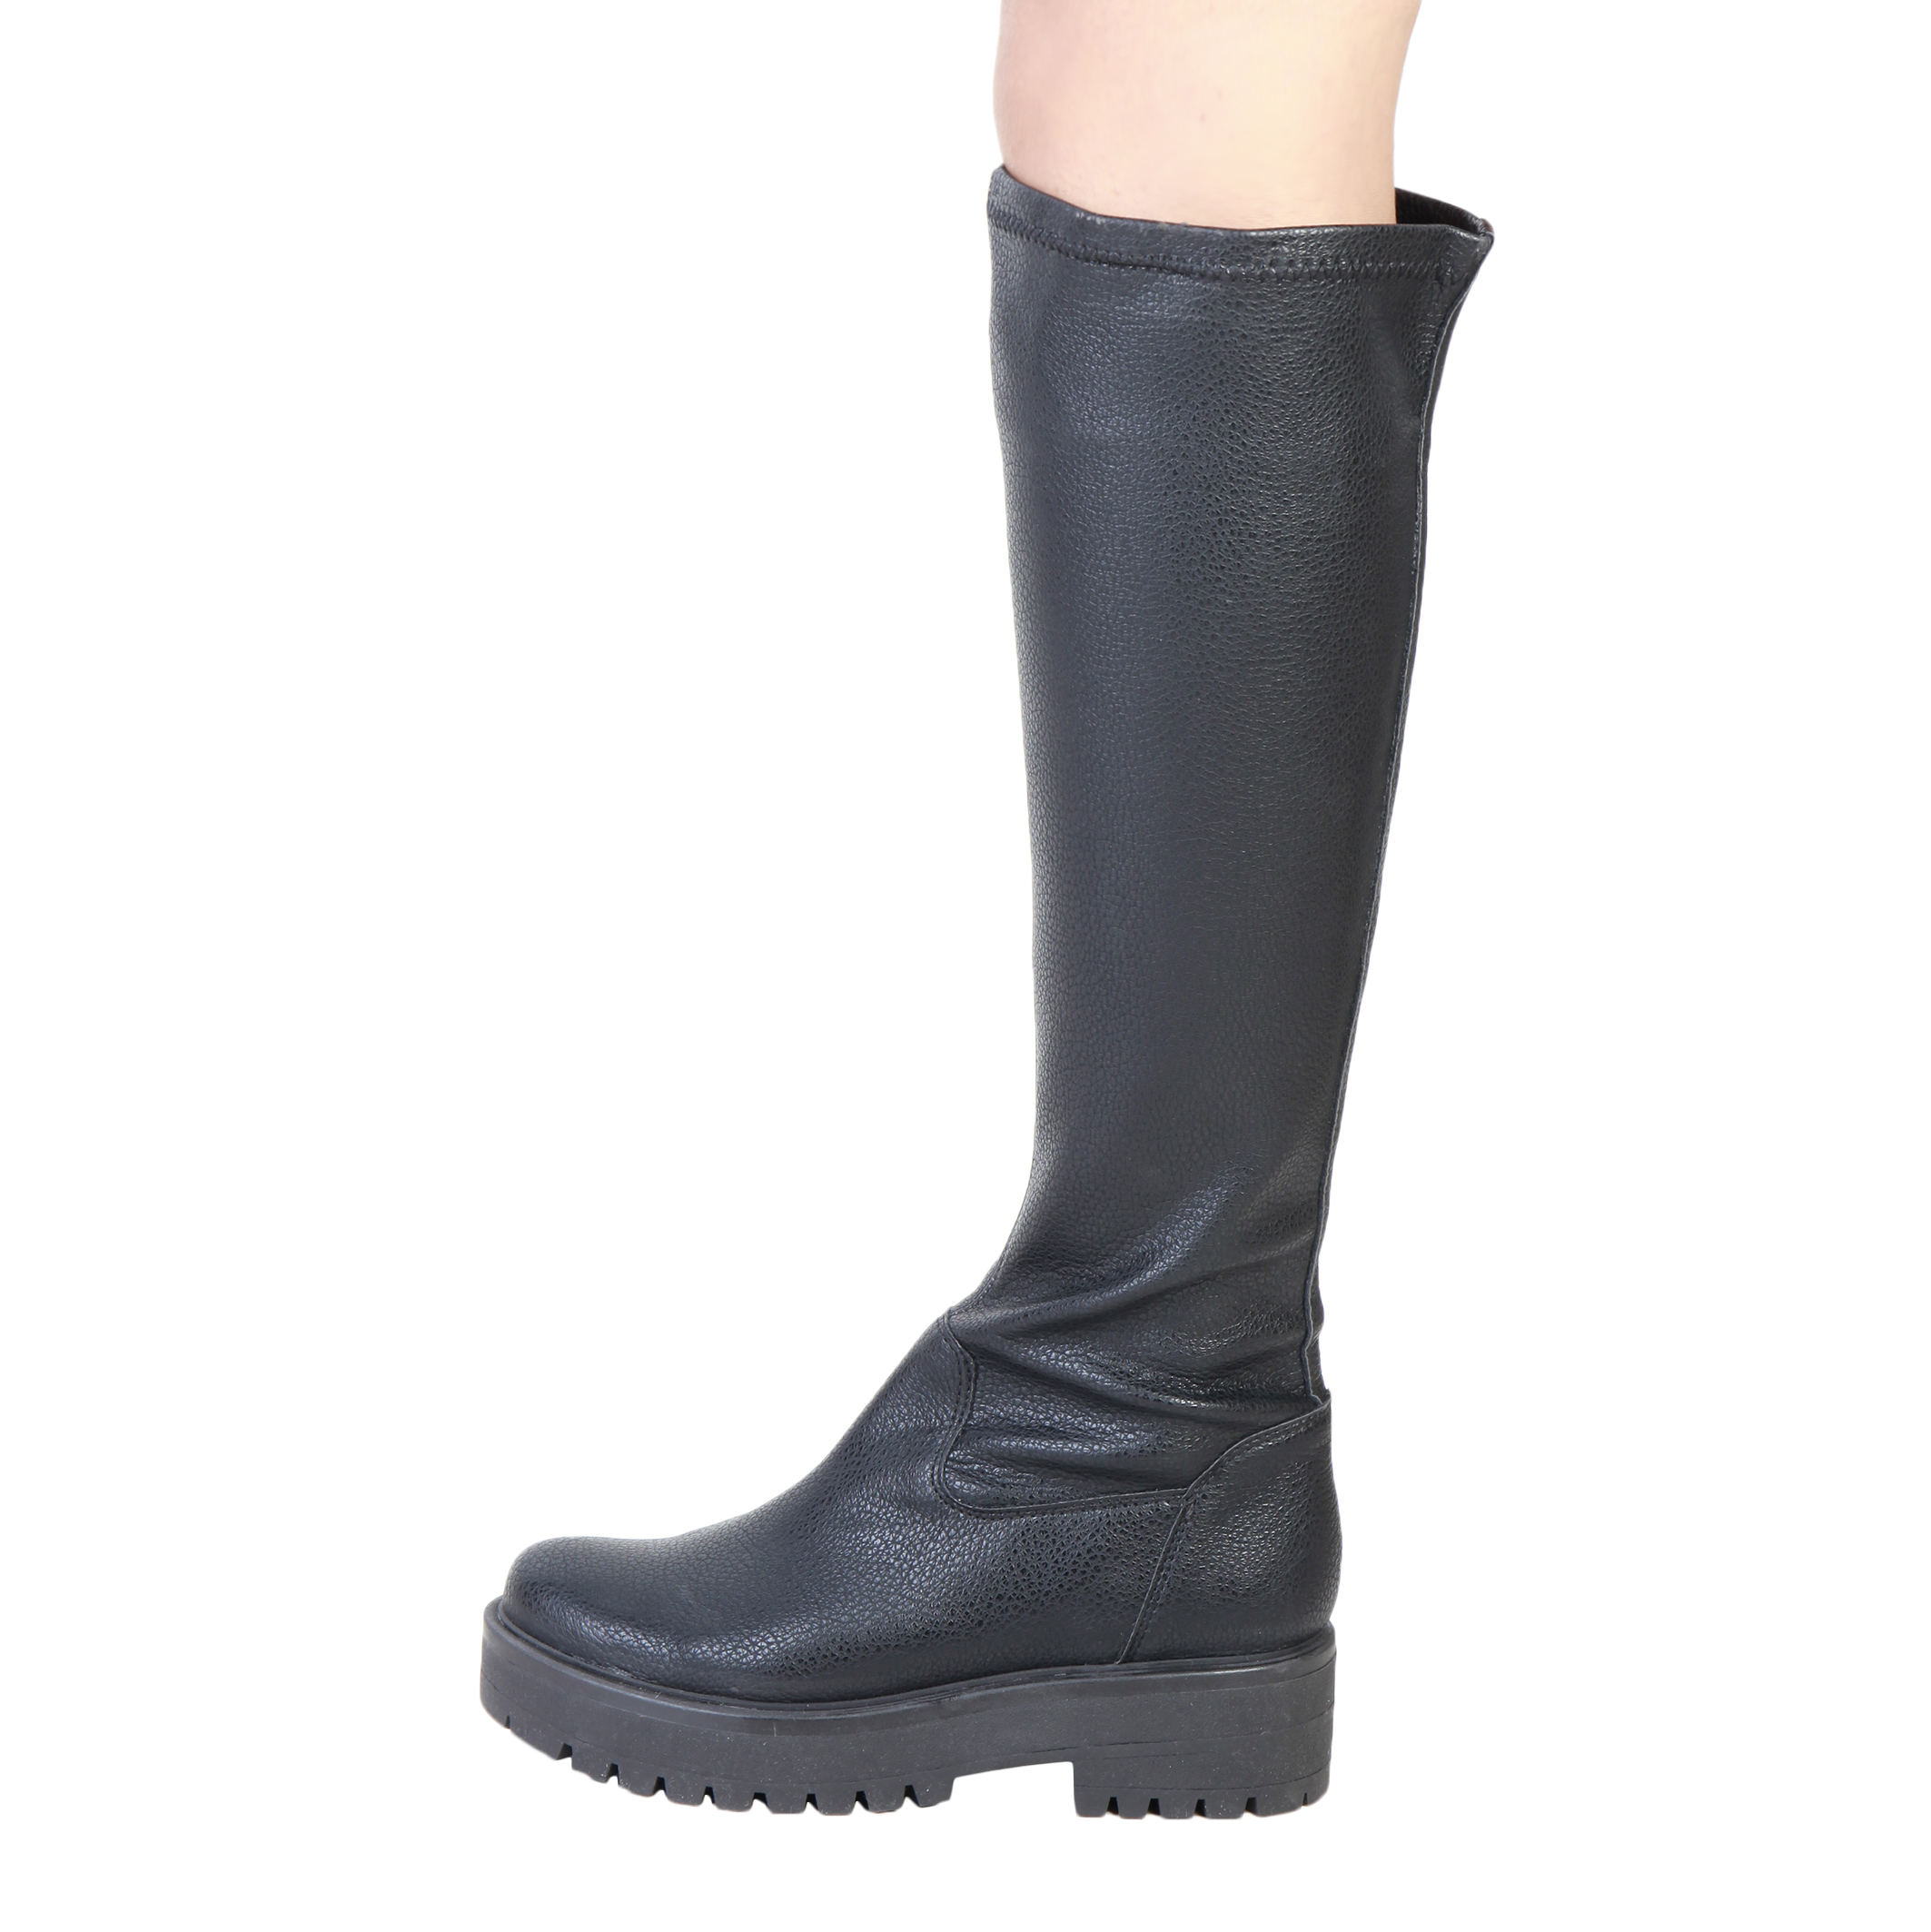 Bottes Ana Lublin Noir Elsie Taille 36 37 38 39 40 41